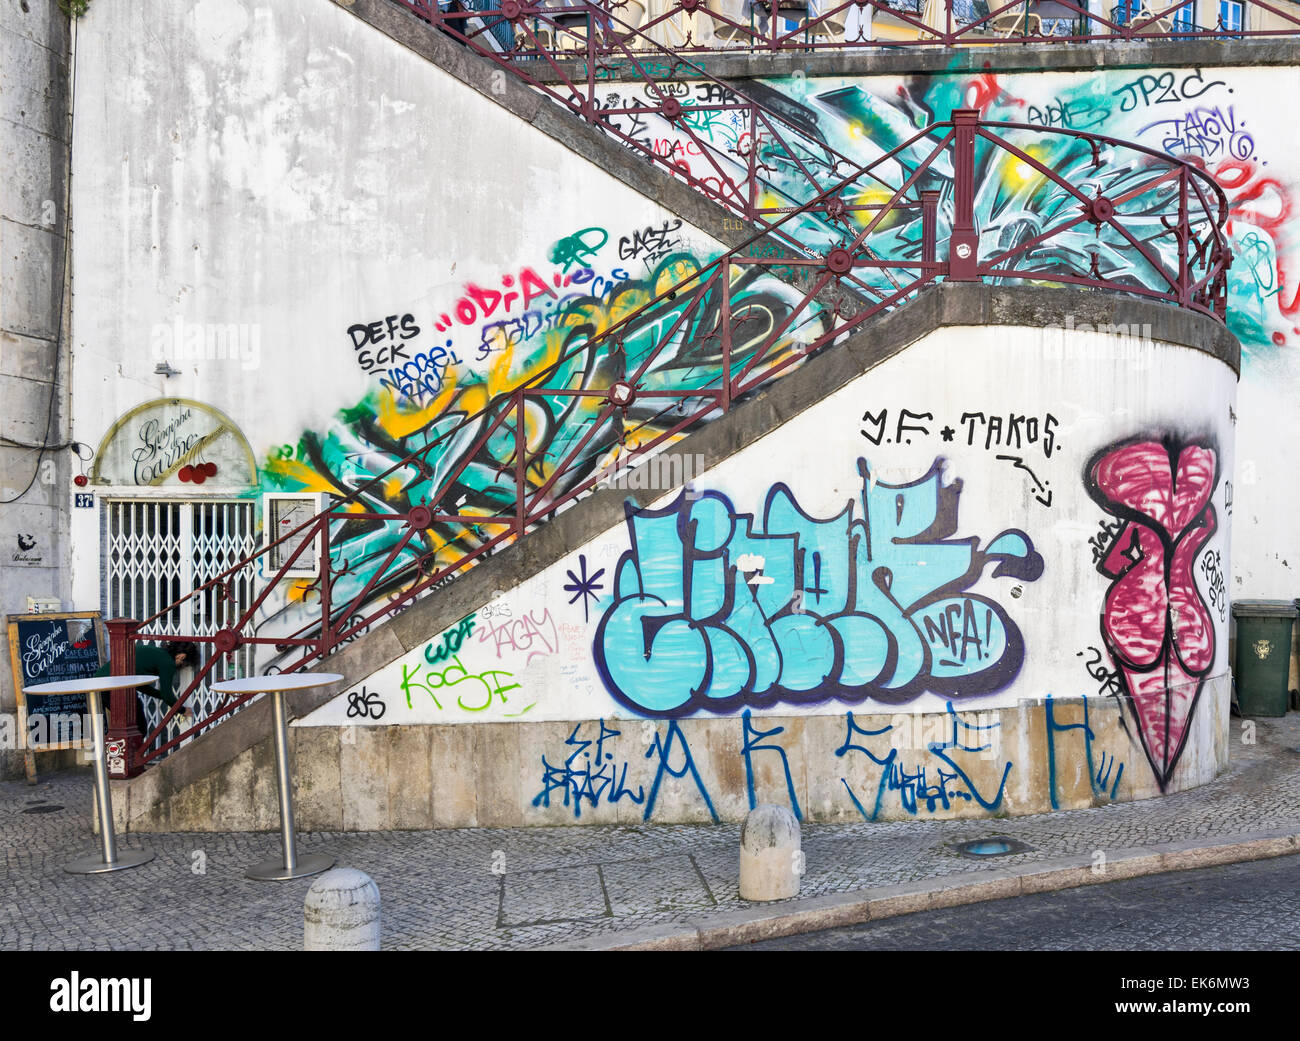 LISBON PORTUGAL WALL ART AND SLOGANS OR GAFFITI ON A STAIRWAY IN THE CITY CENTRE - Stock Image